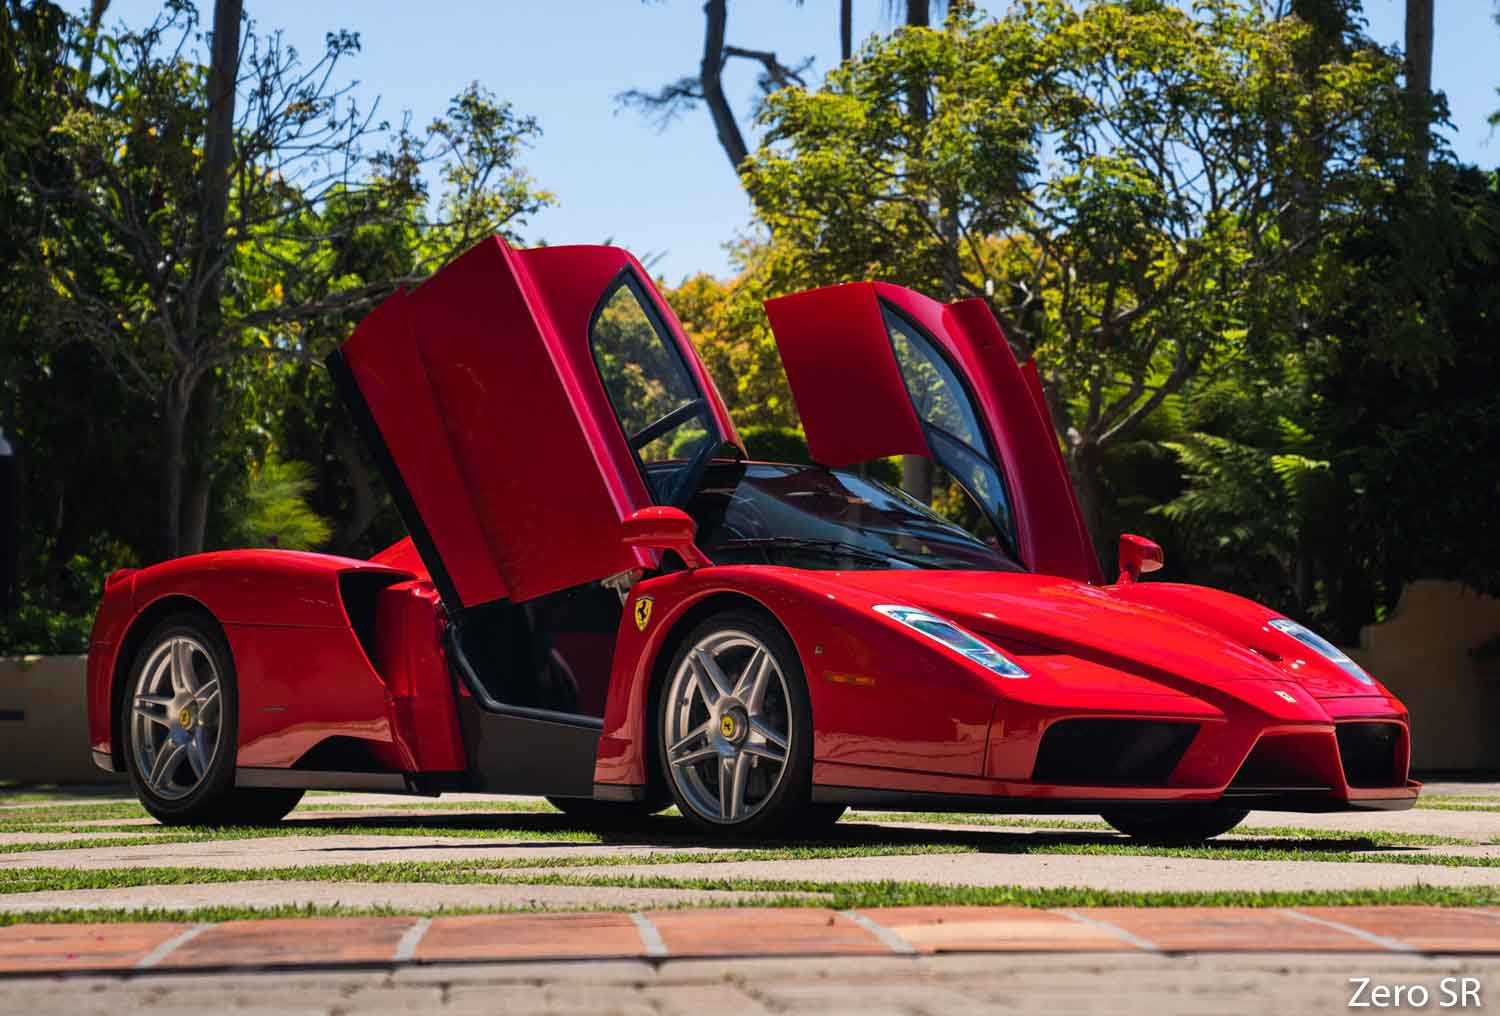 Ferrari Enzo Auctioned For Rs. 20 Crore; Most Expensive Car Sold Online